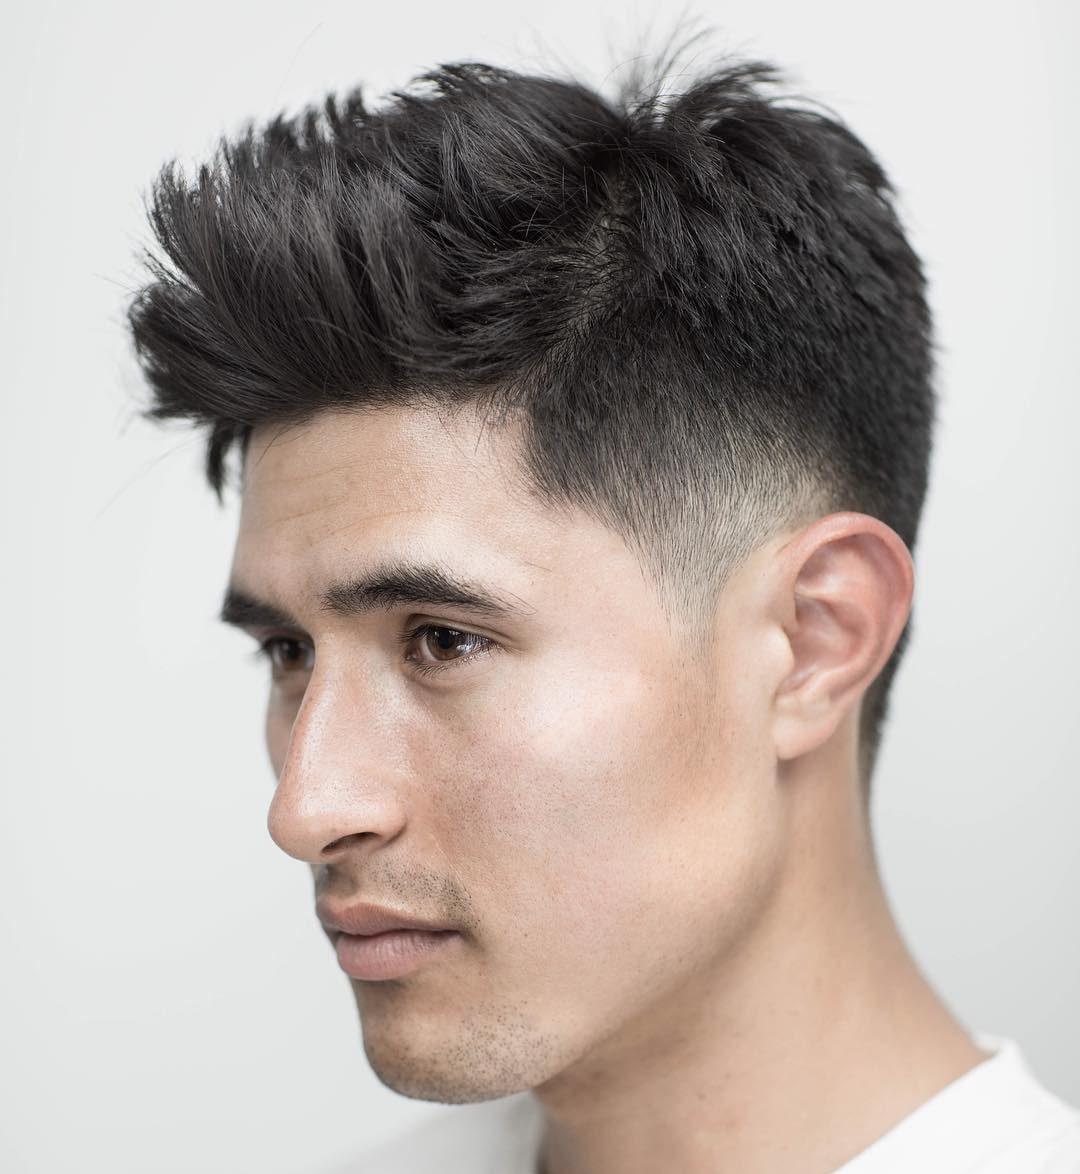 Short + Messy Hair for Men